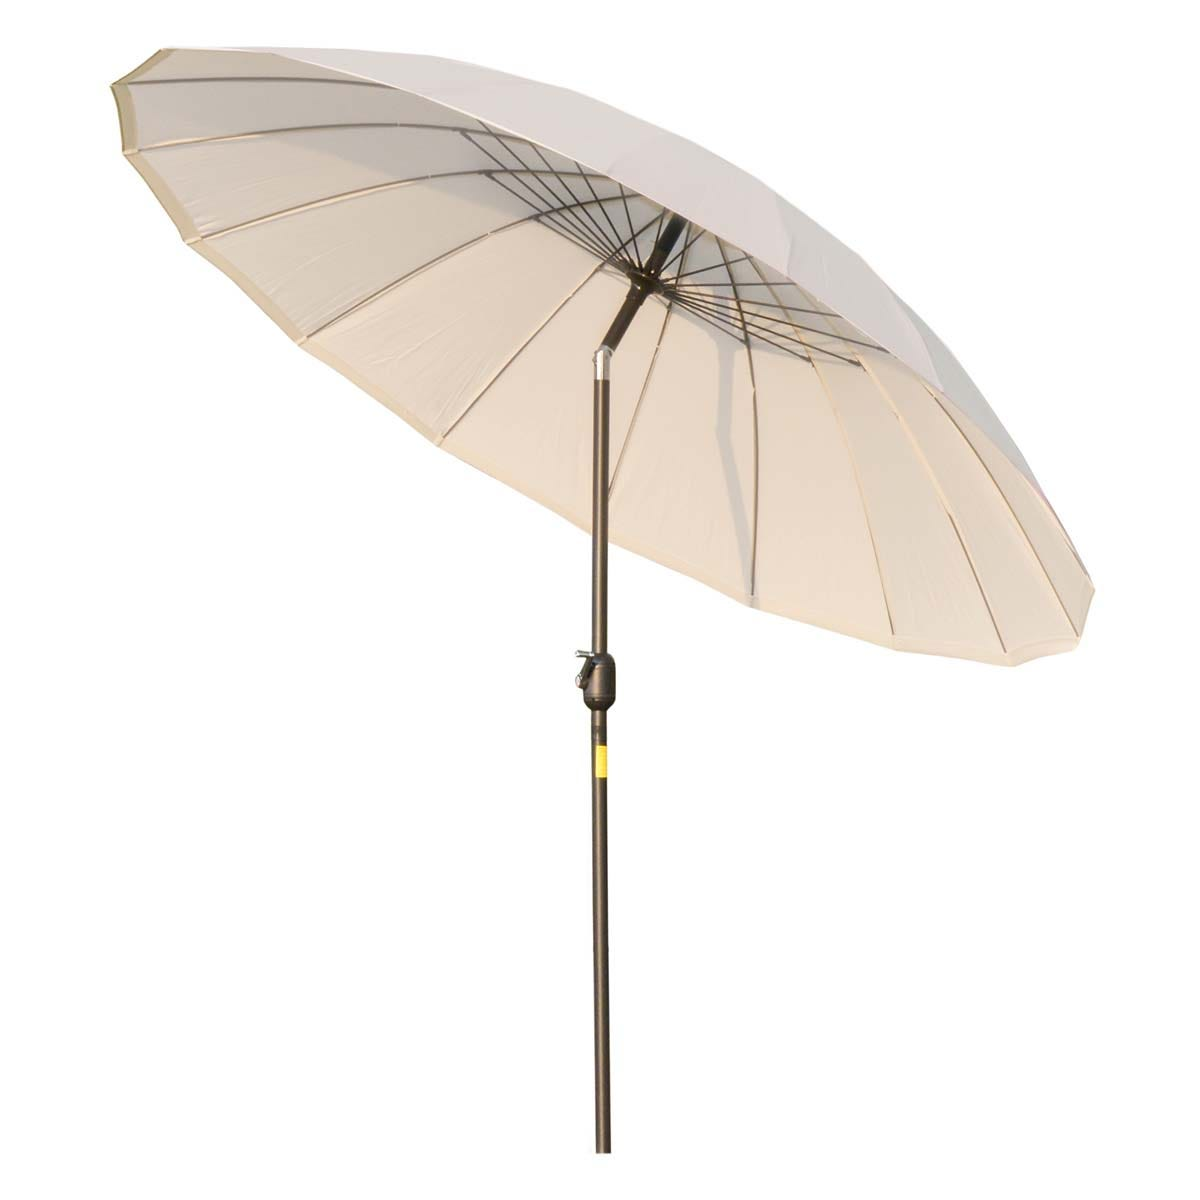 Outsunny 2.4m Round Parasol (base not included) - Cream